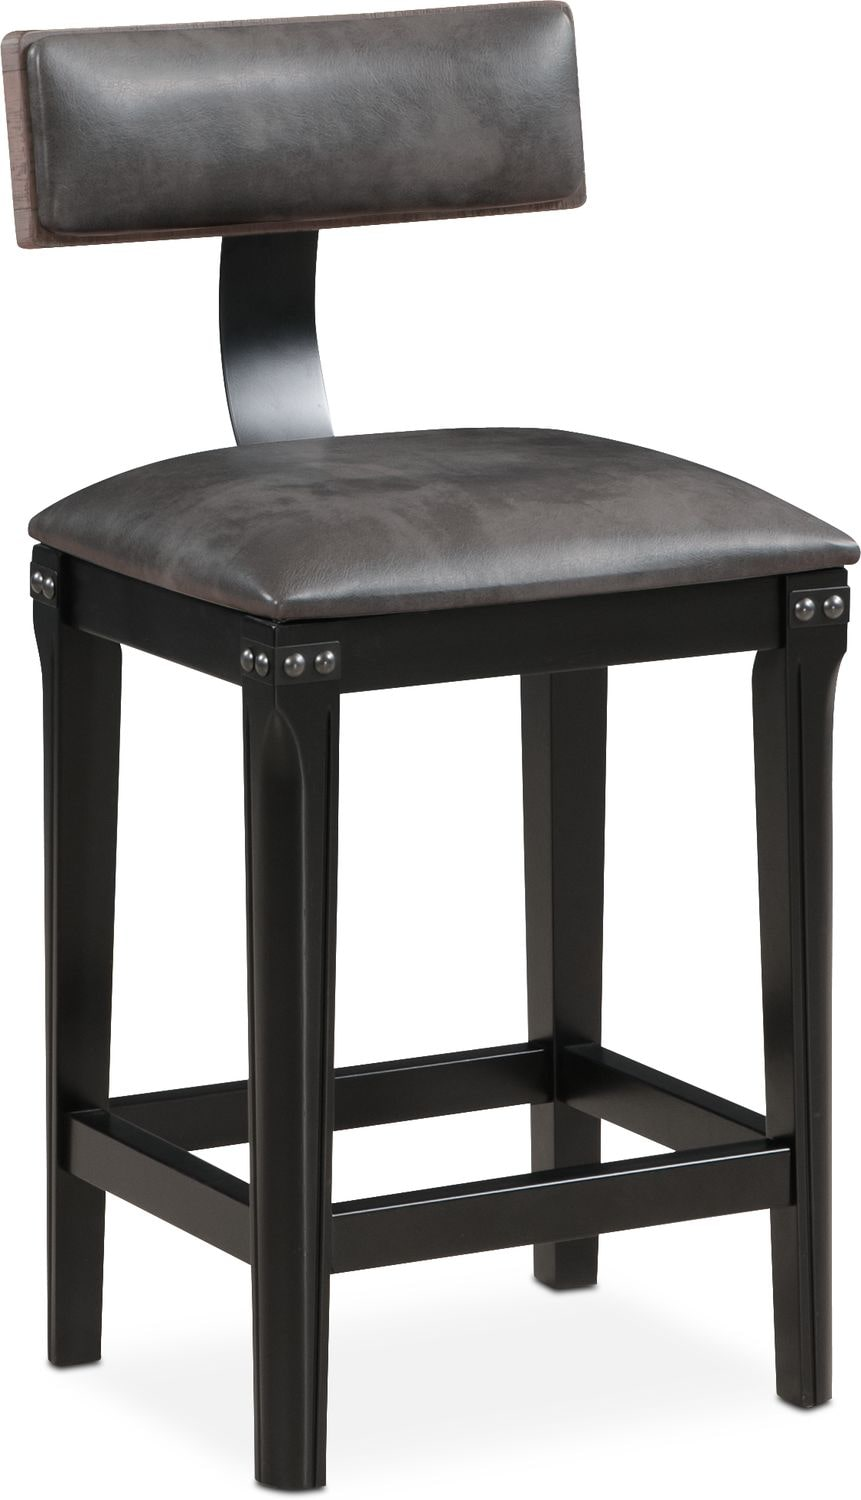 Exceptional Newcastle Counter Height Stool   Gray